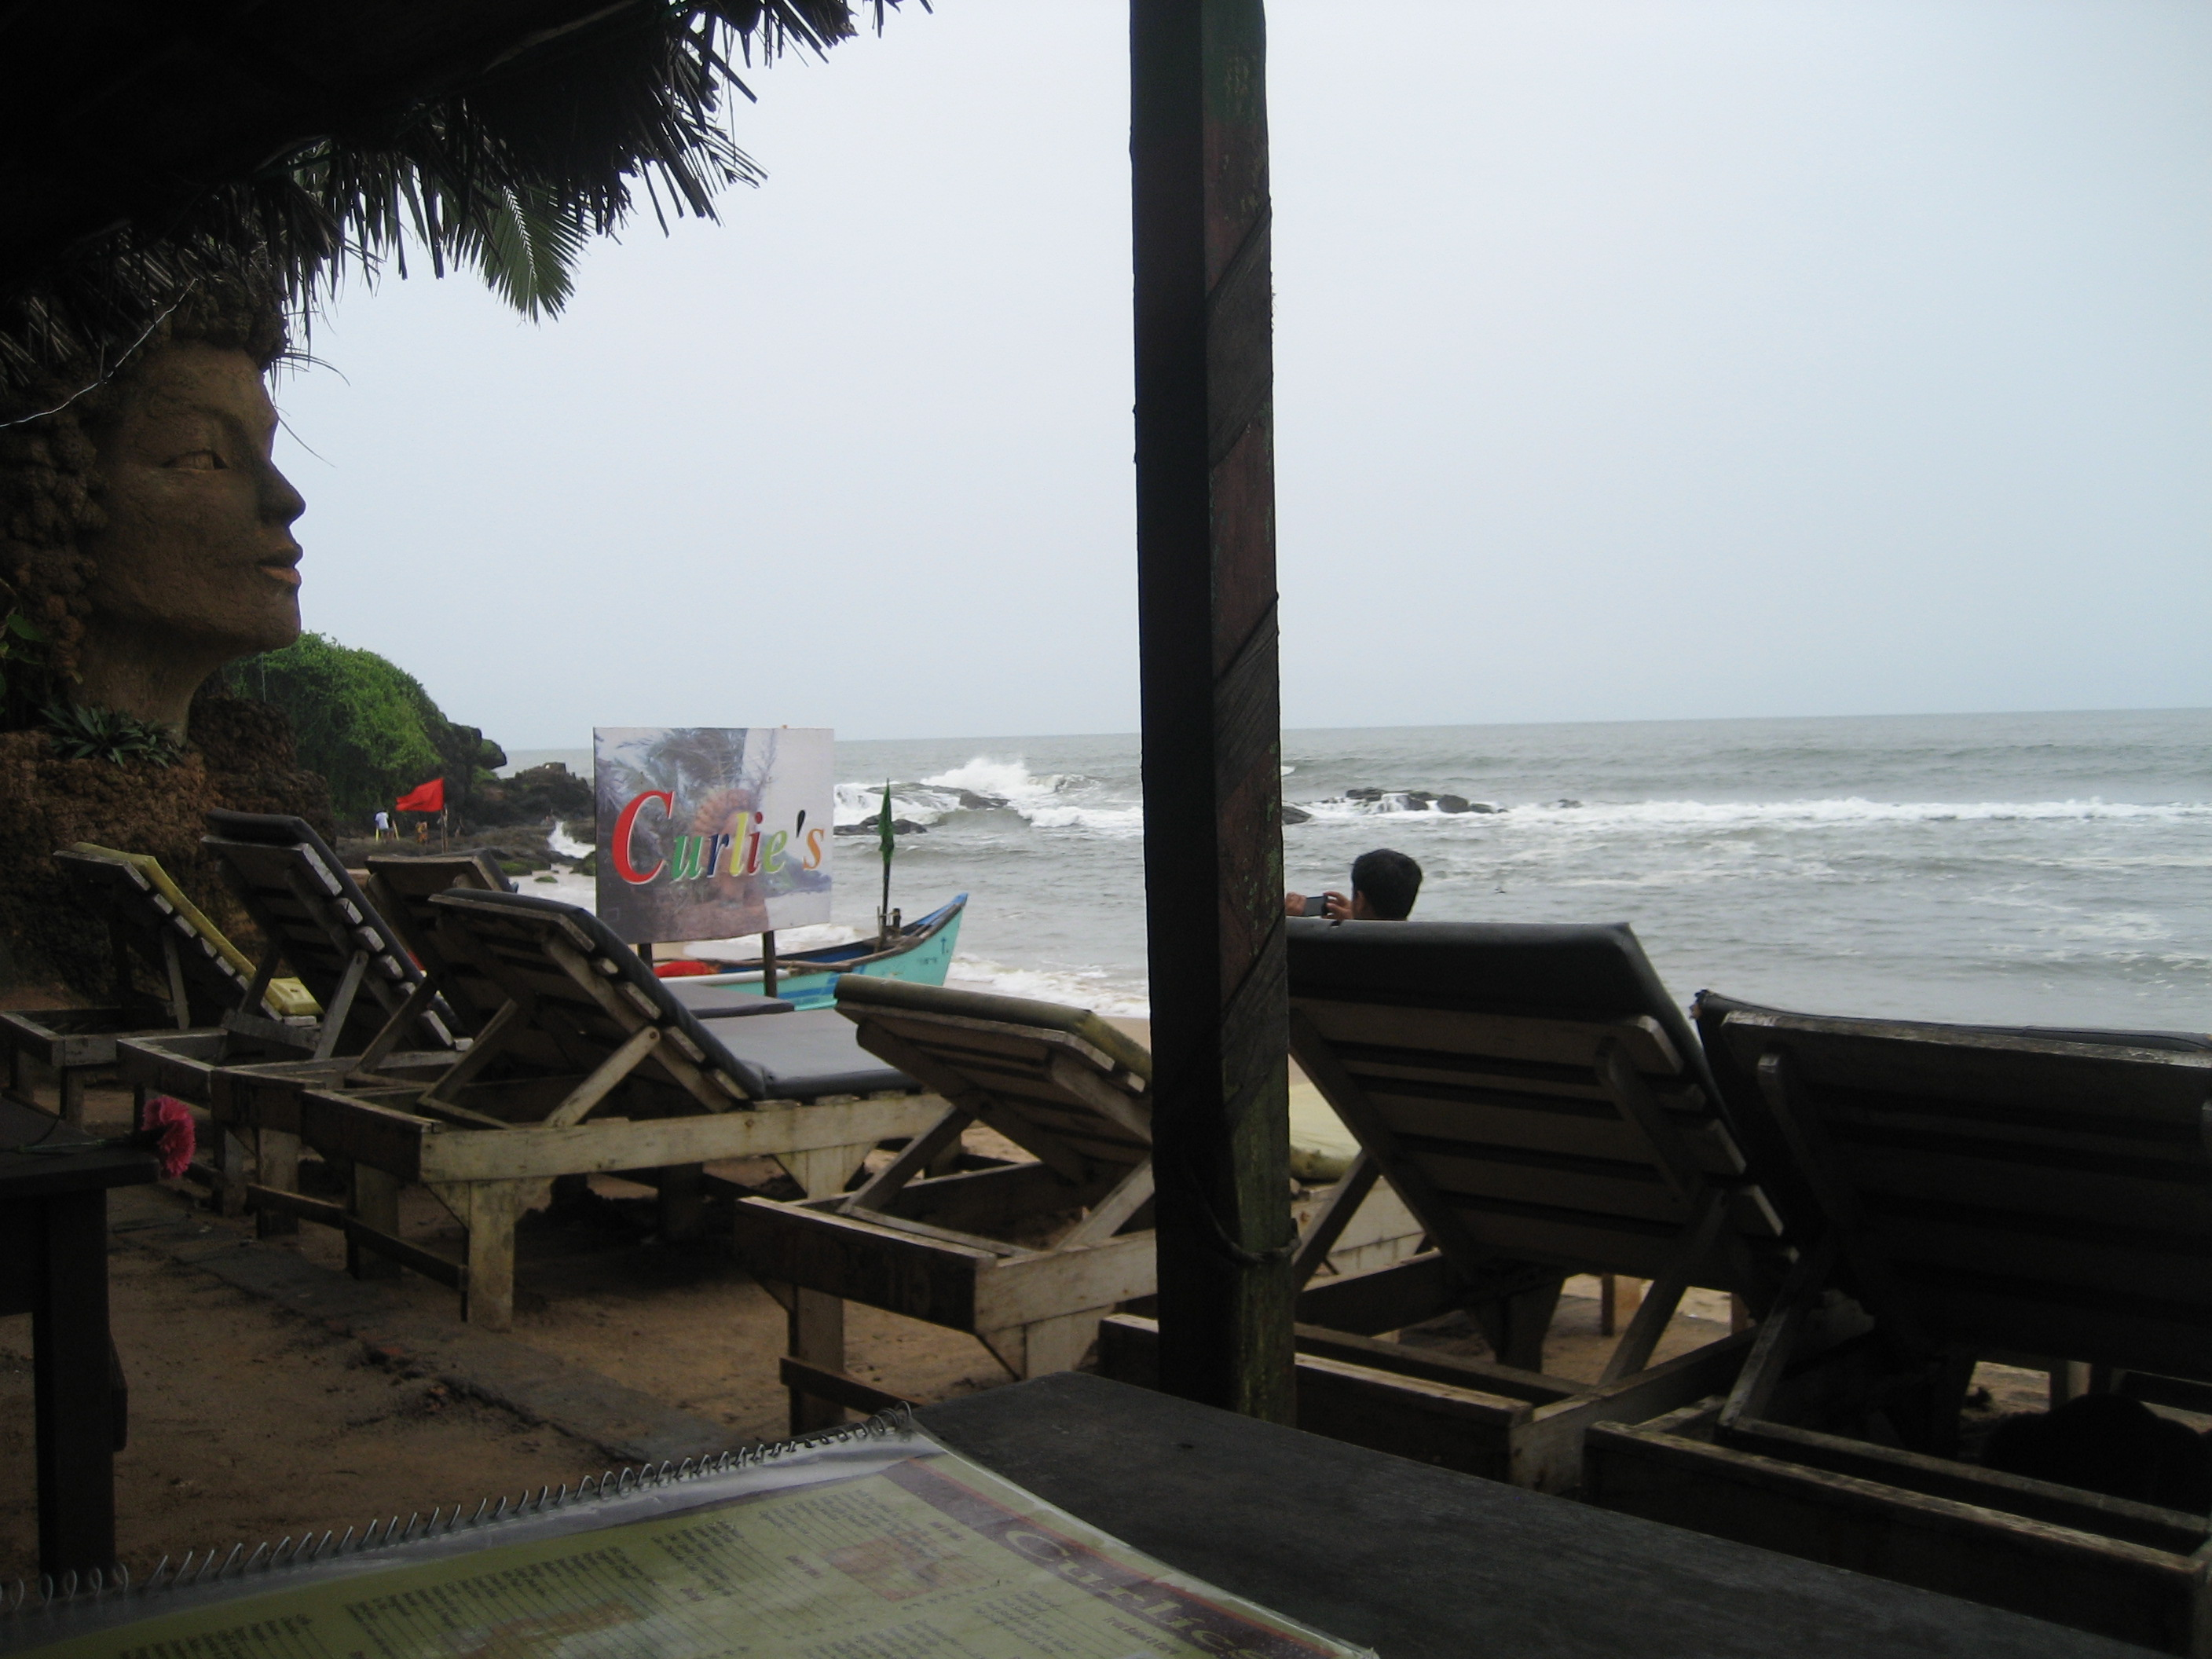 Curlies next to Anjuna beach. Hot relaxing destination for many.